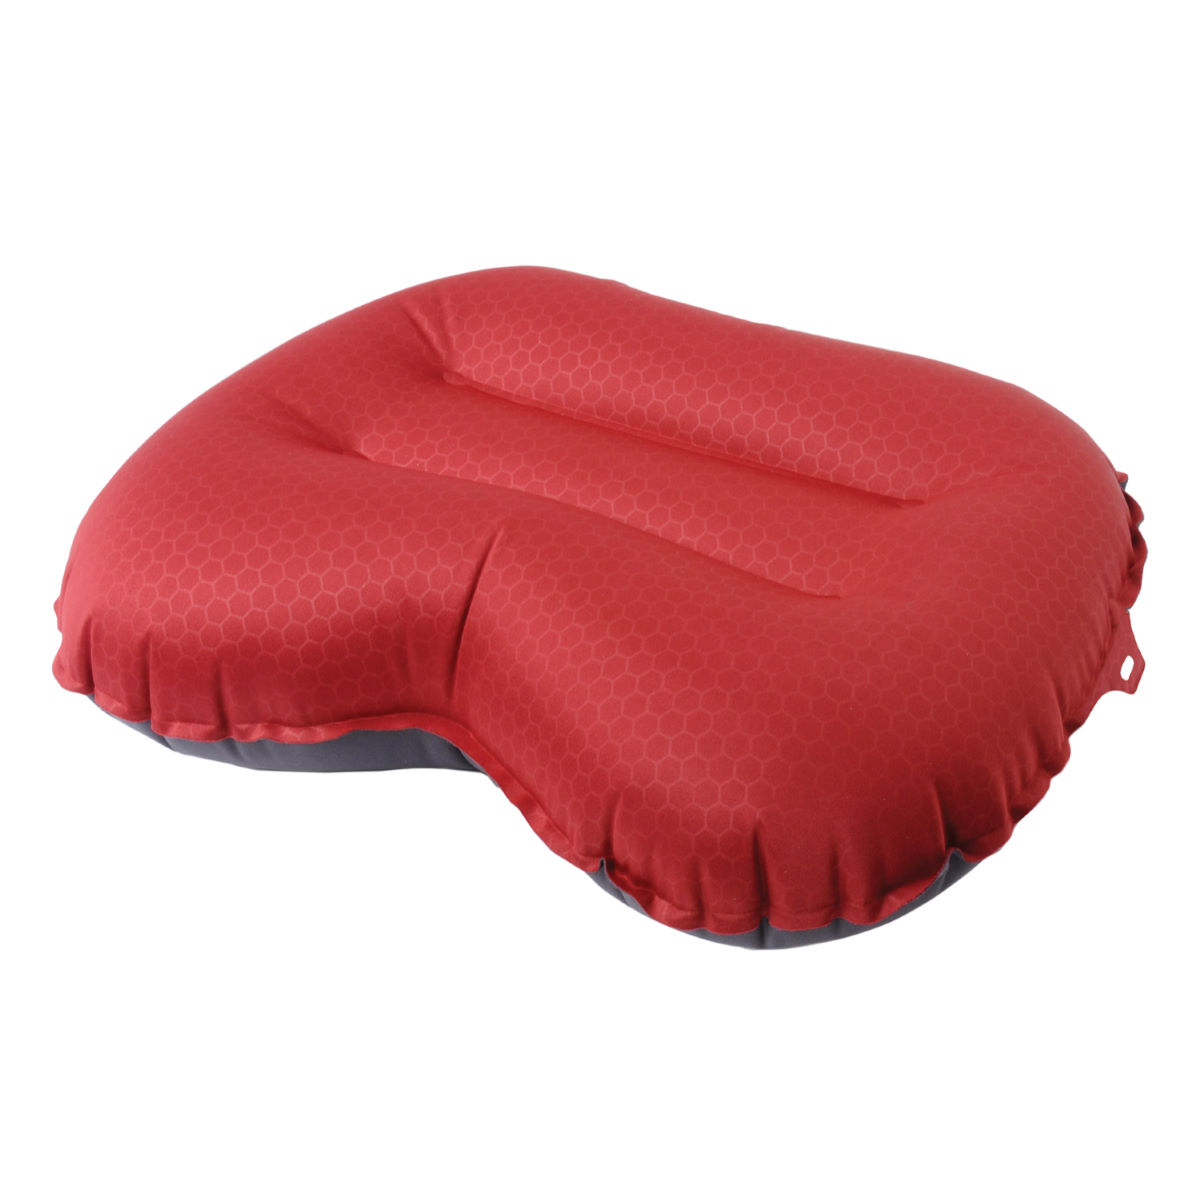 Exped Air Pillow - Almohadas